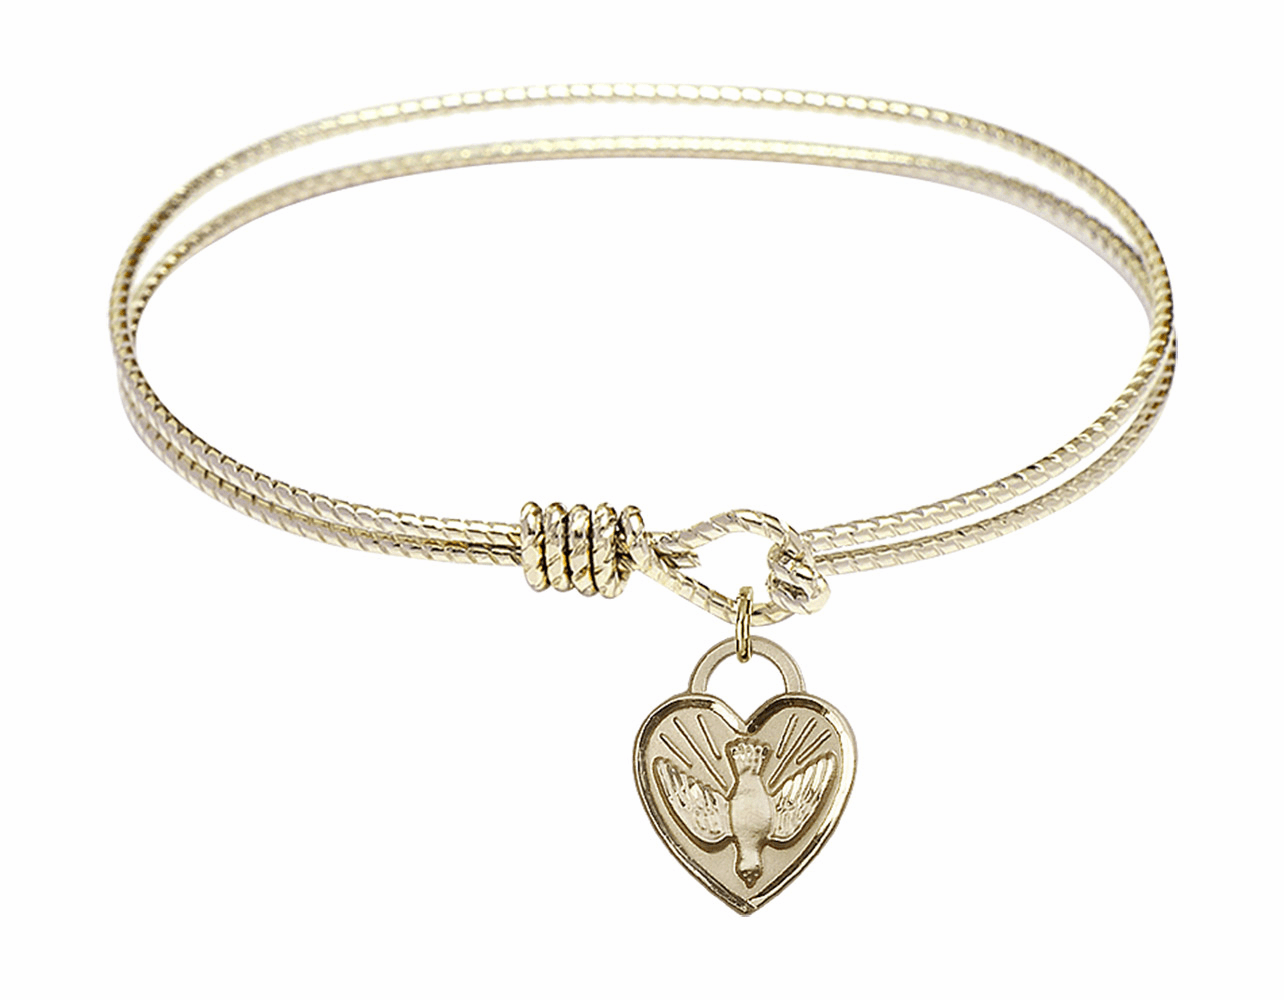 Round Twist Eye Hook Bangle Bracelet w/Dove Confirmation Heart Charm by Bliss Mfg